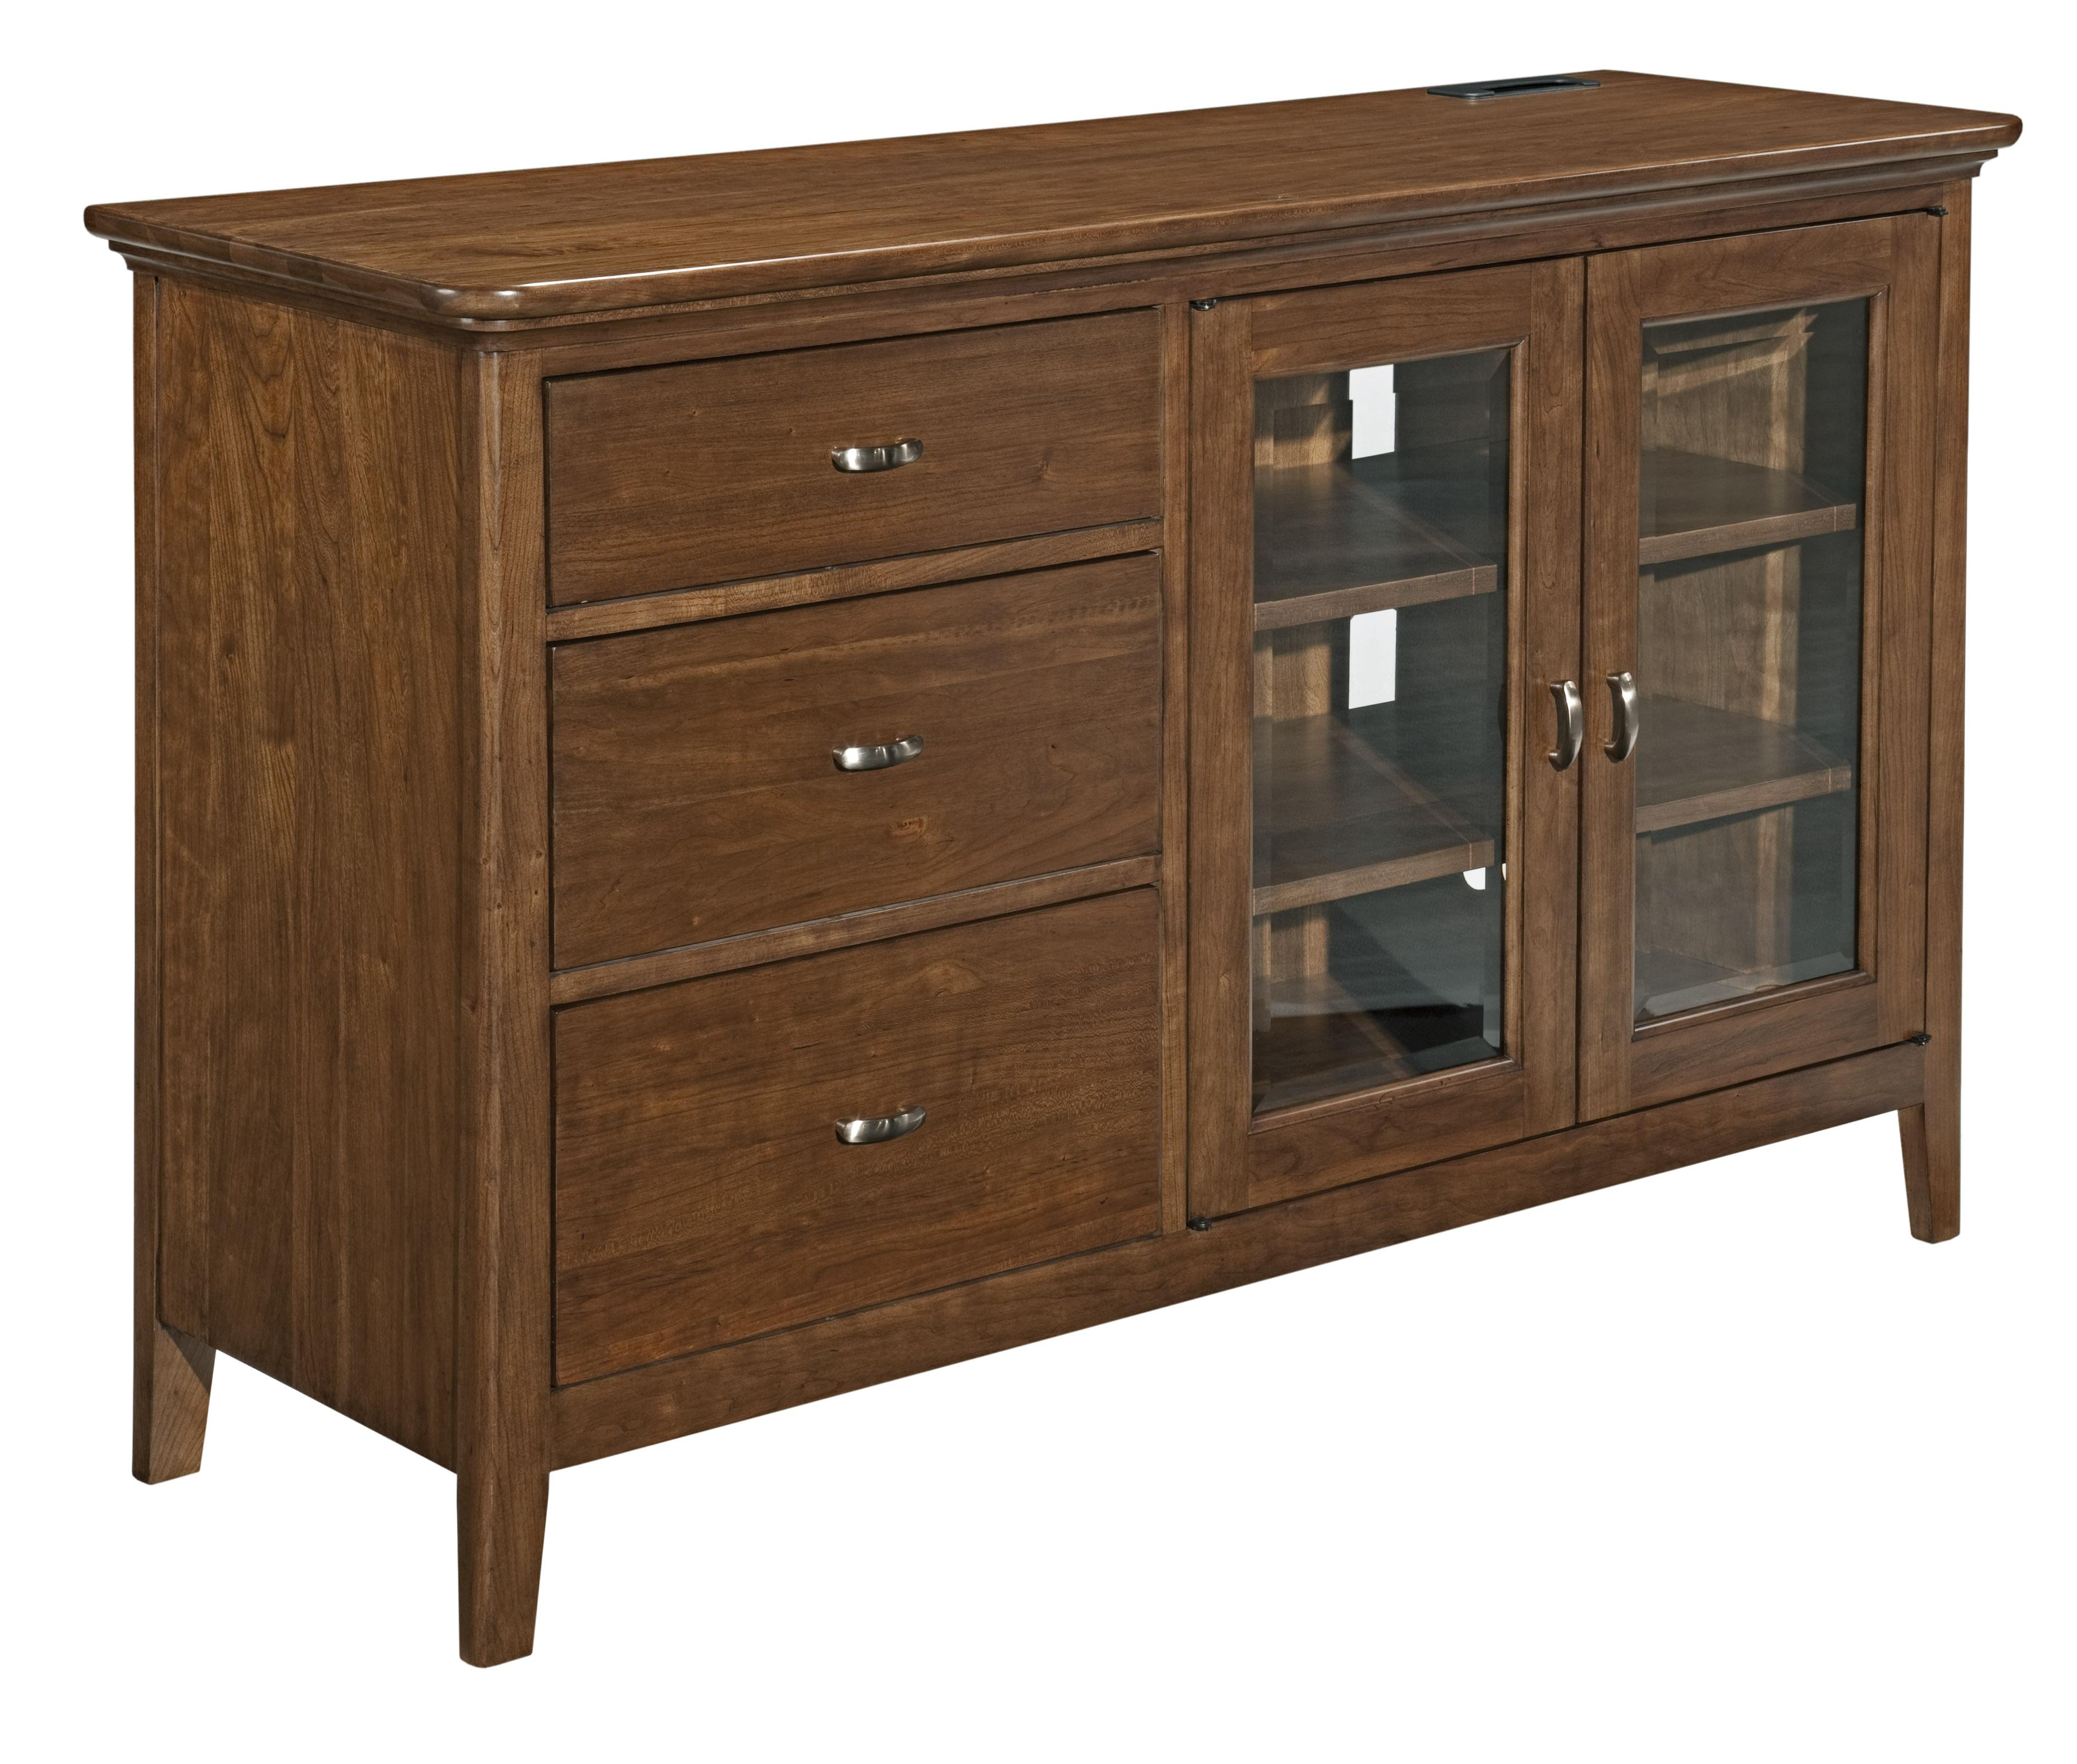 Kincaid Furniture Cherry Park Entertainment Console - Item Number: 63-035